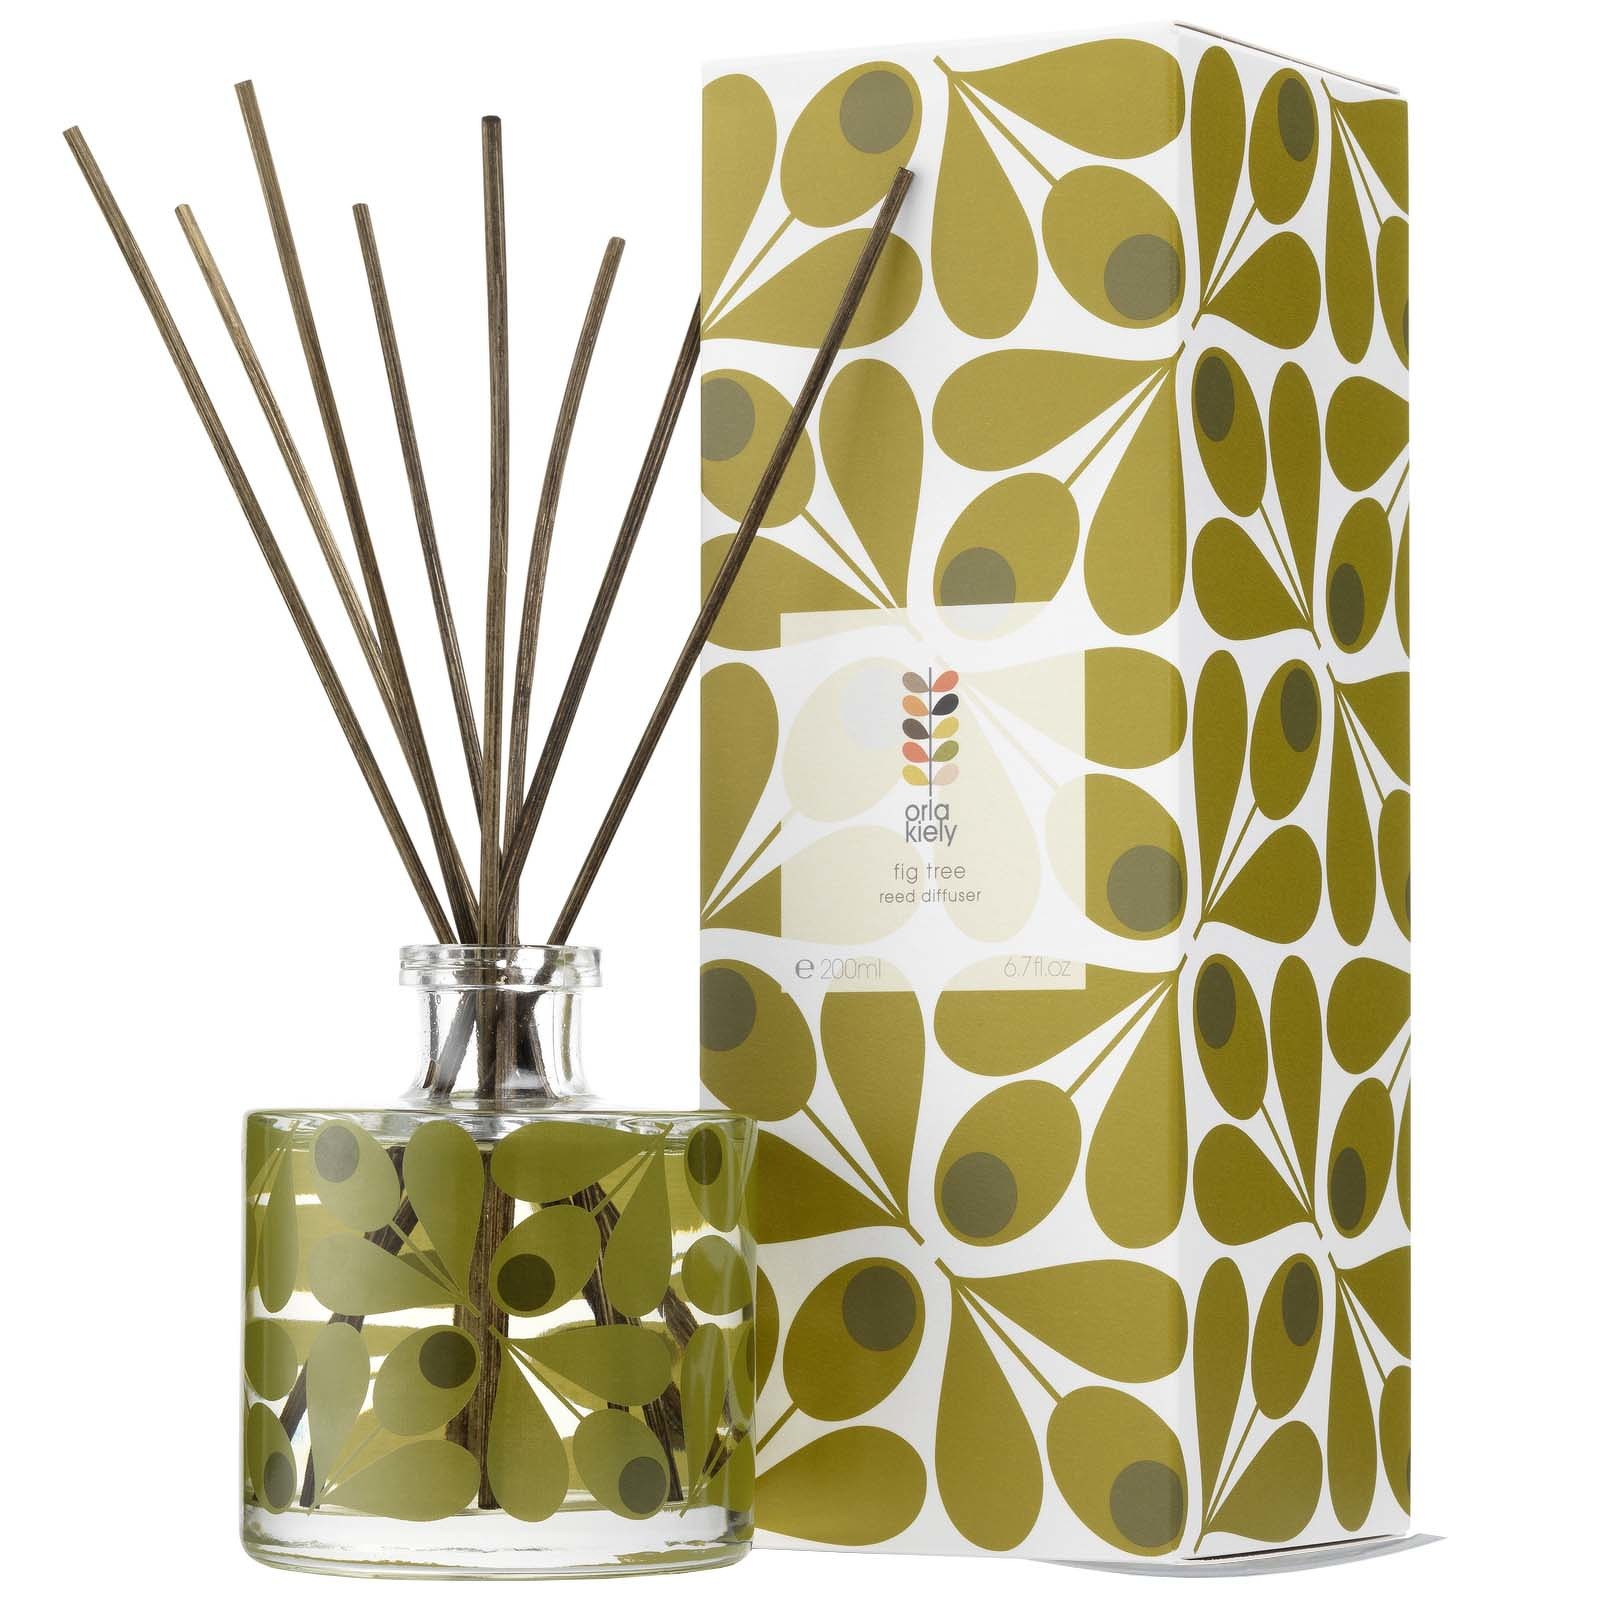 Orla Kiely Home Fig Tree Room Diffuser 200ml - Gifts & Sets